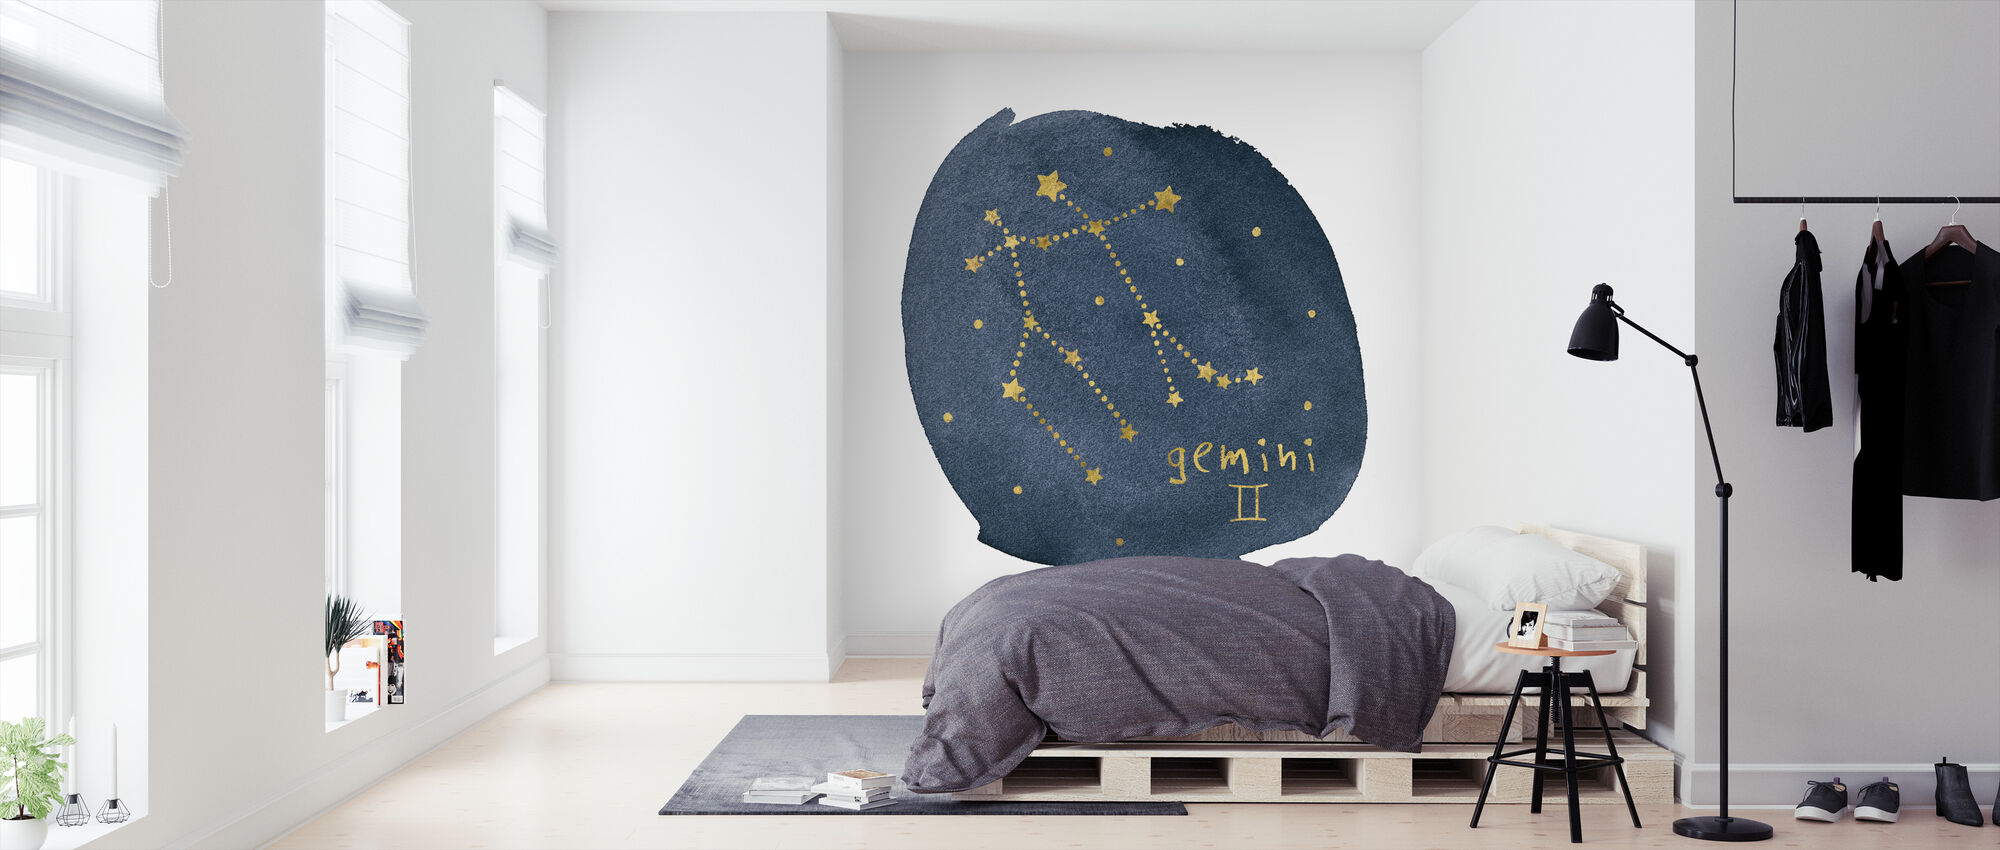 Horoscope Gemini - Wallpaper - Bedroom